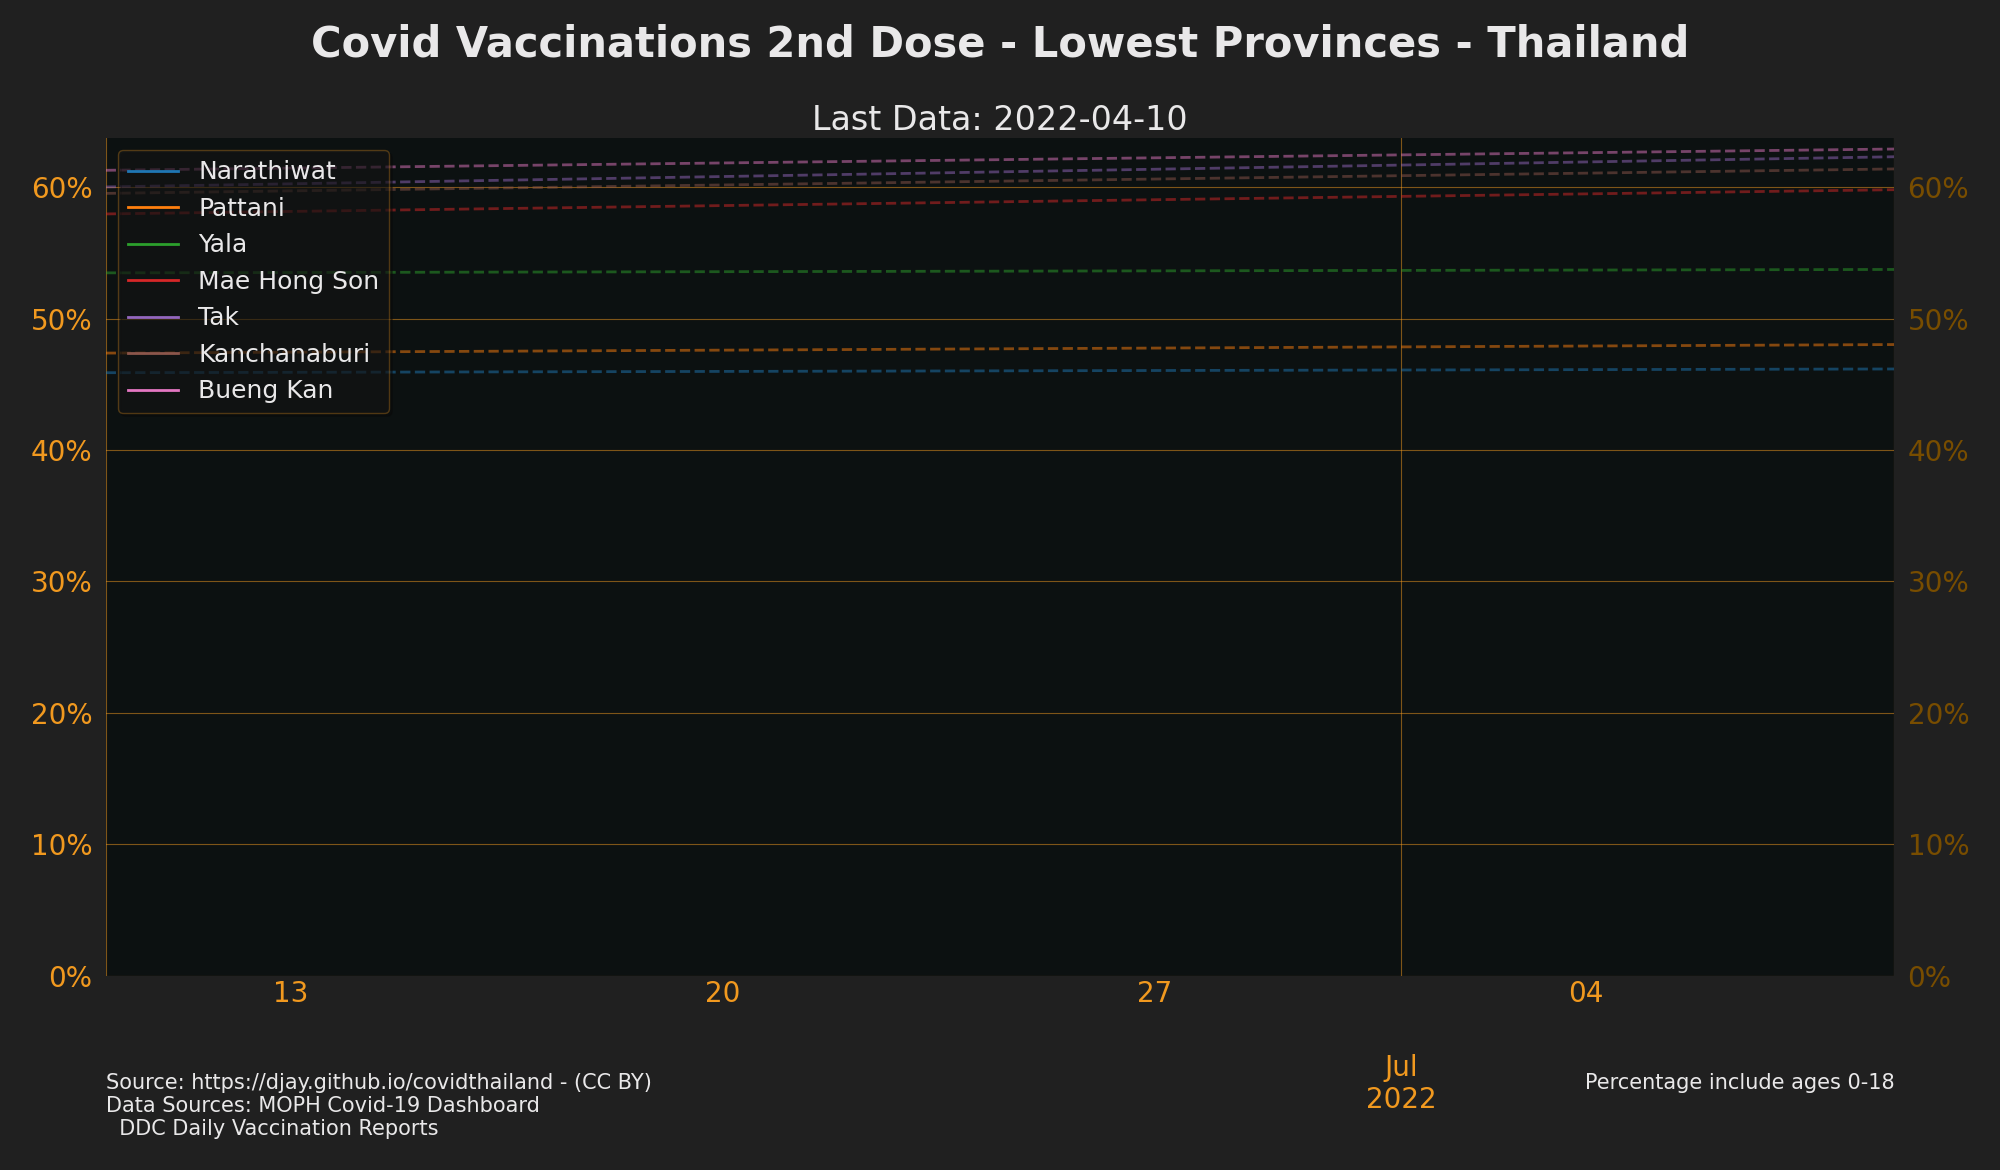 Lowest Provinces by Vaccination 2nd Jab